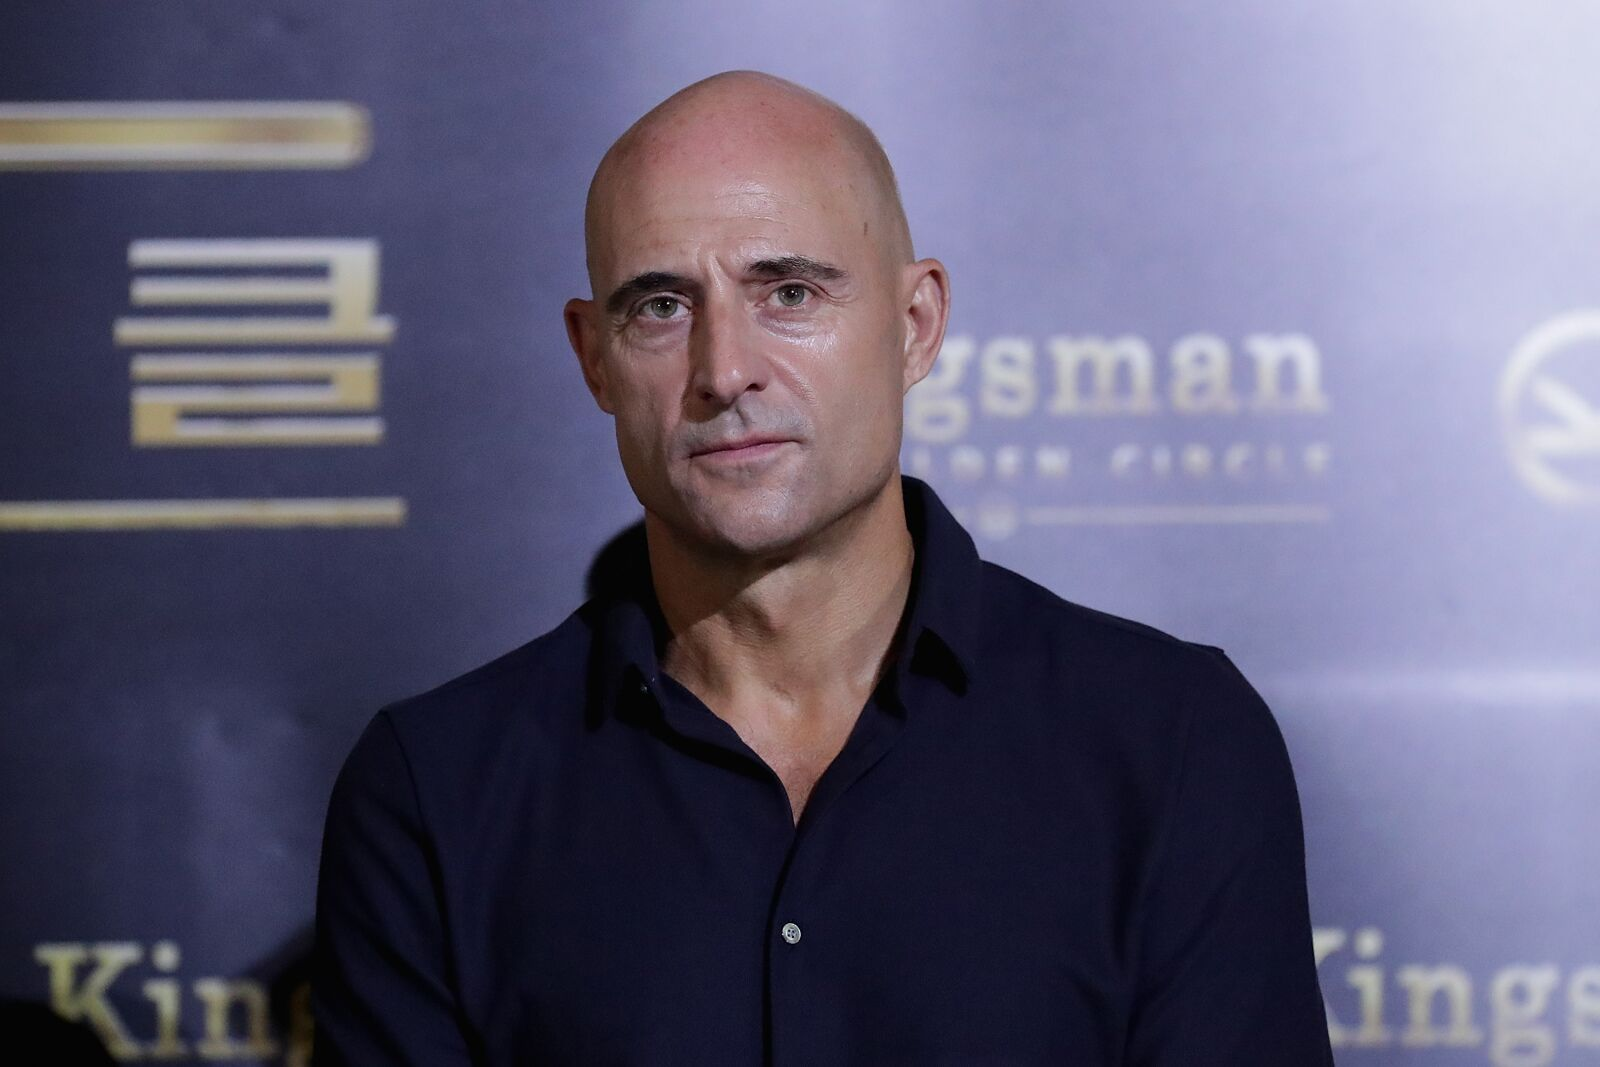 Mark Strong claims he was offered a key role on Game of Thrones